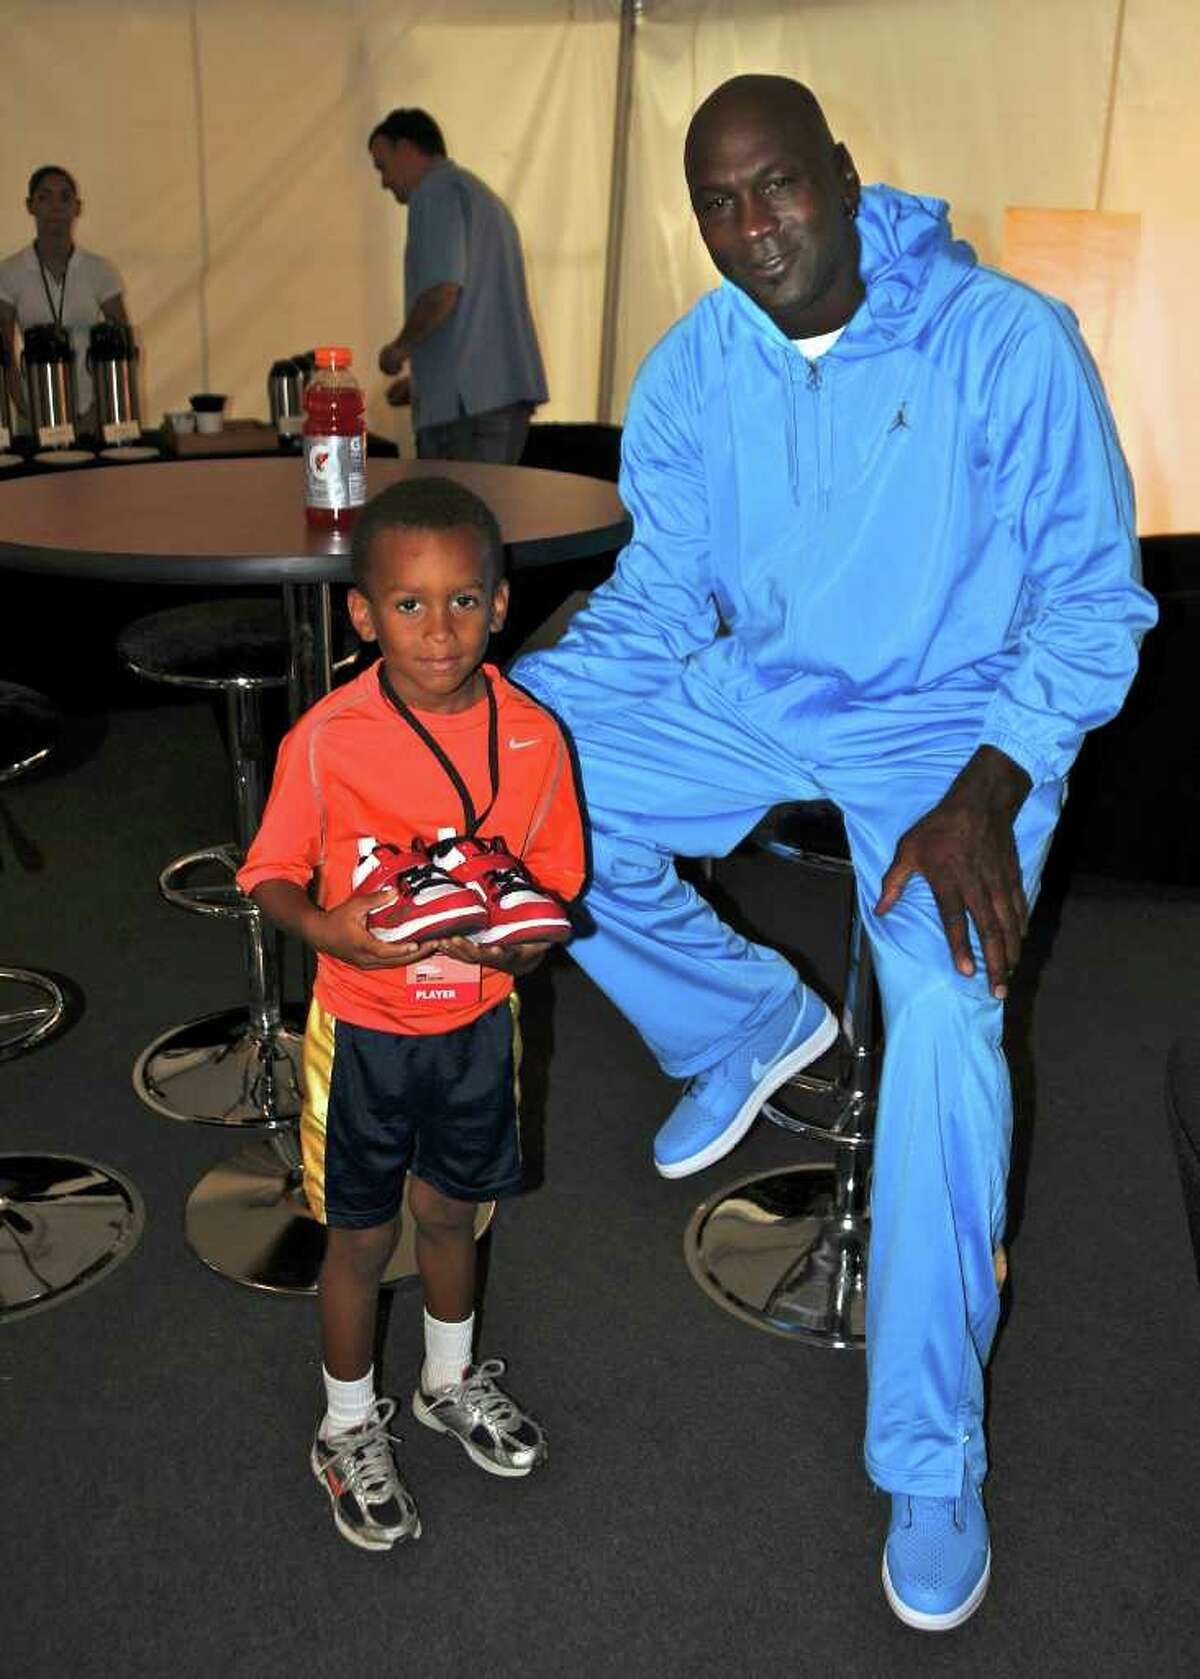 Greenwich resident Carnegie Tribble Johnson, 5, a soon-to-be first-grader at North Street School, met basketball great Michael Jordan last week at the World Basketball Festival at Rucker Park in Harlem and had his Jordan sneakers signed by the superstar.